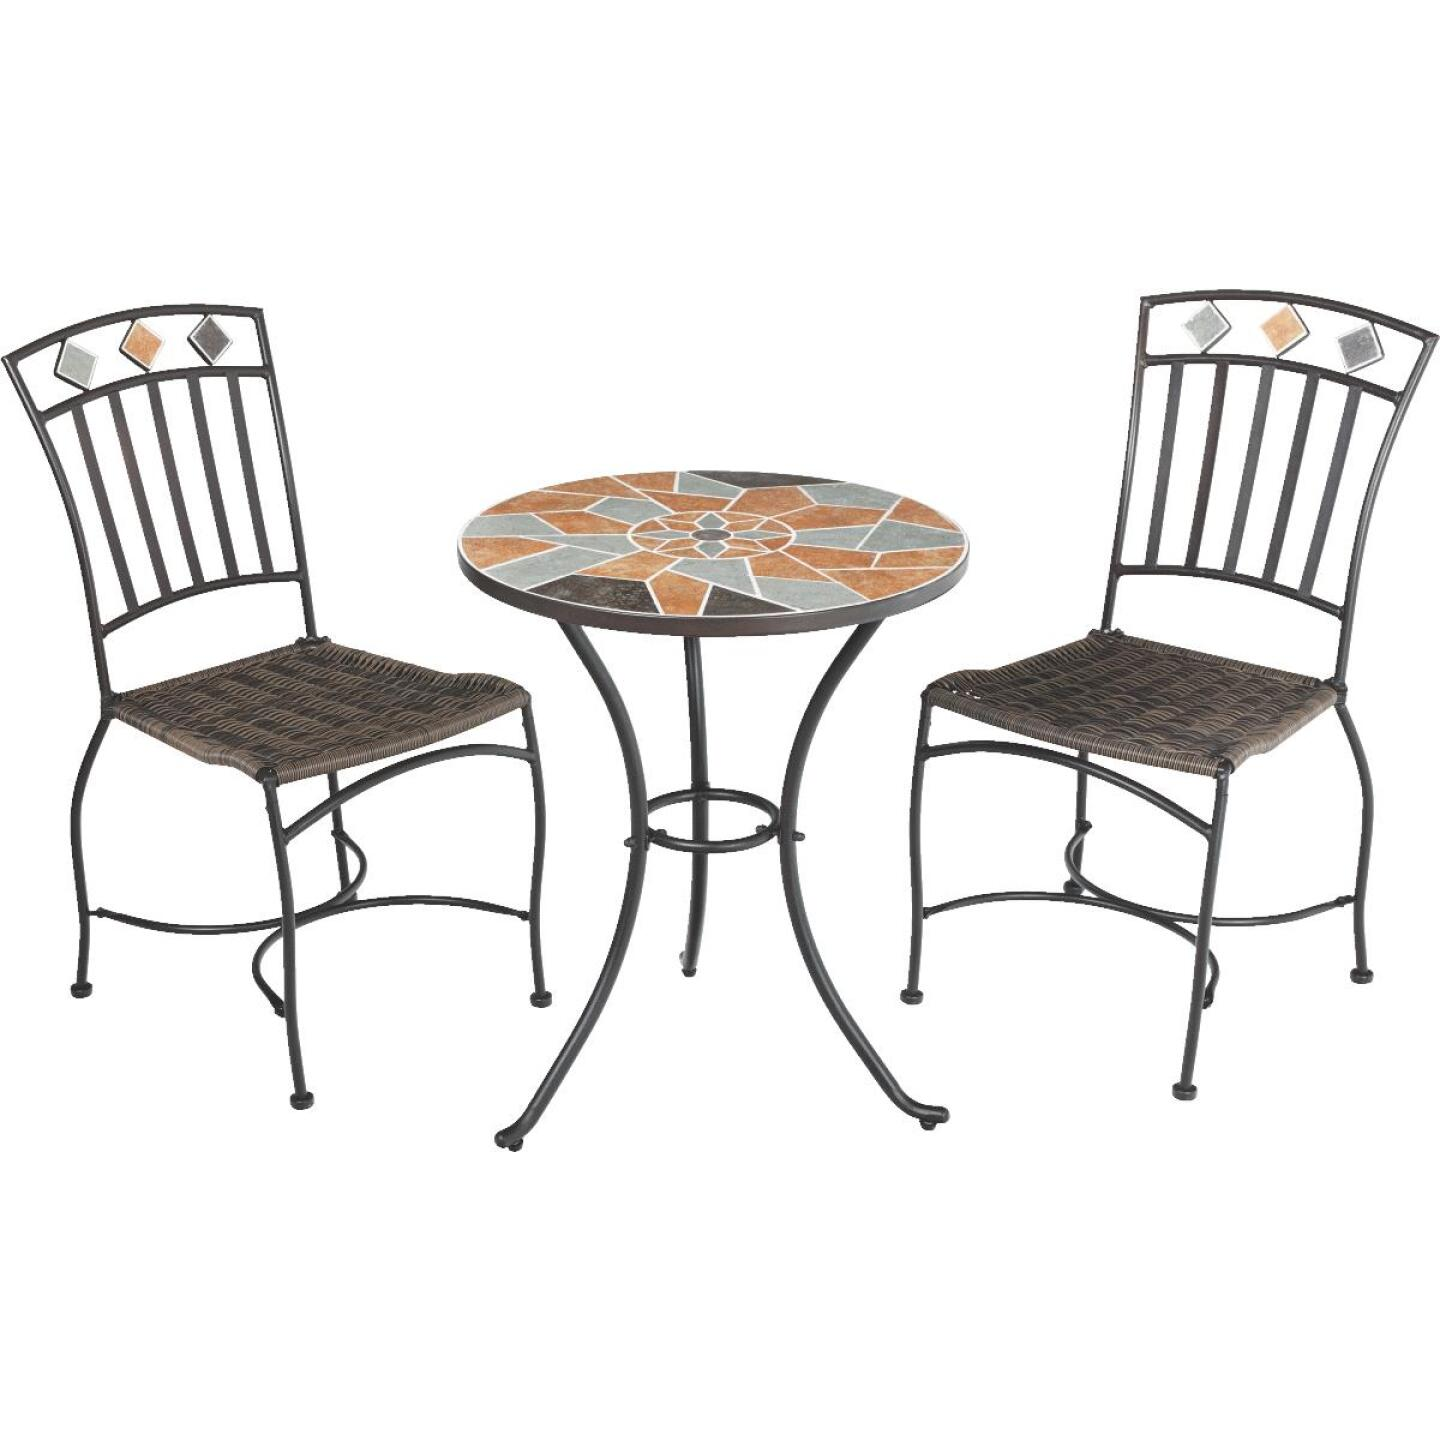 Outdoor Expressions Santorini 3-Piece Bistro Set with Wicker Seats Image 1